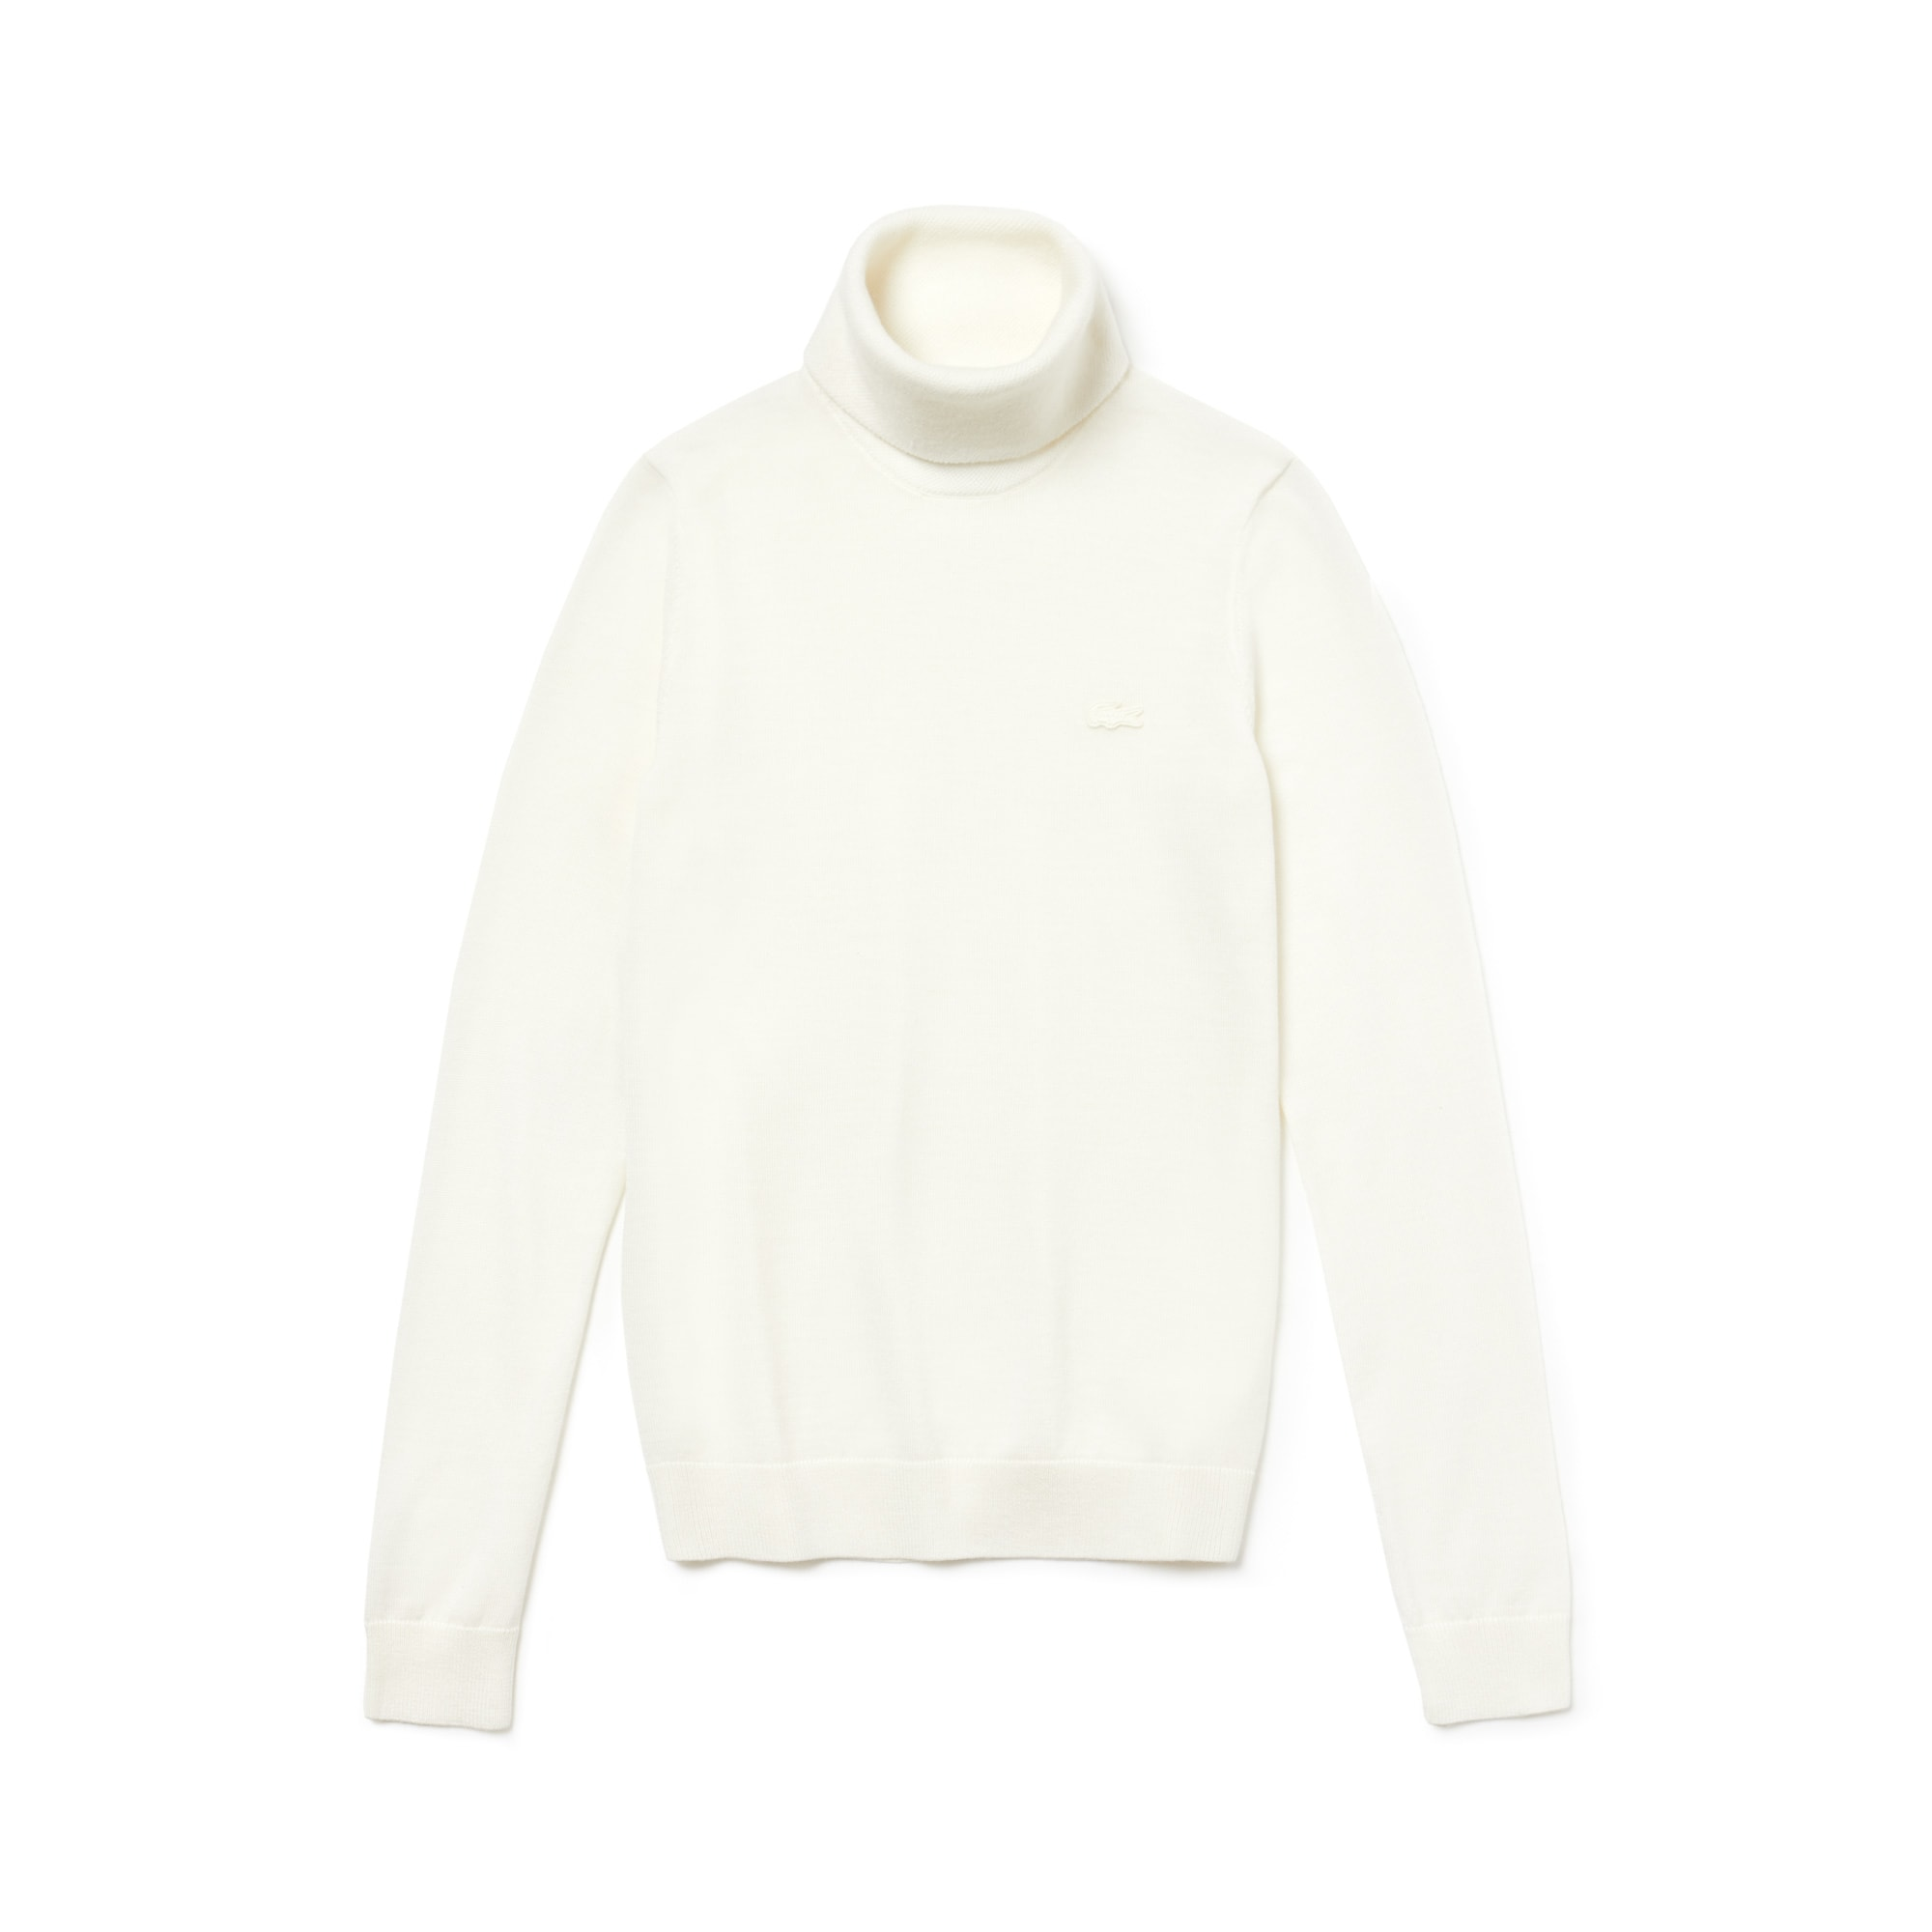 Women's Turtleneck Wool Jersey Sweater